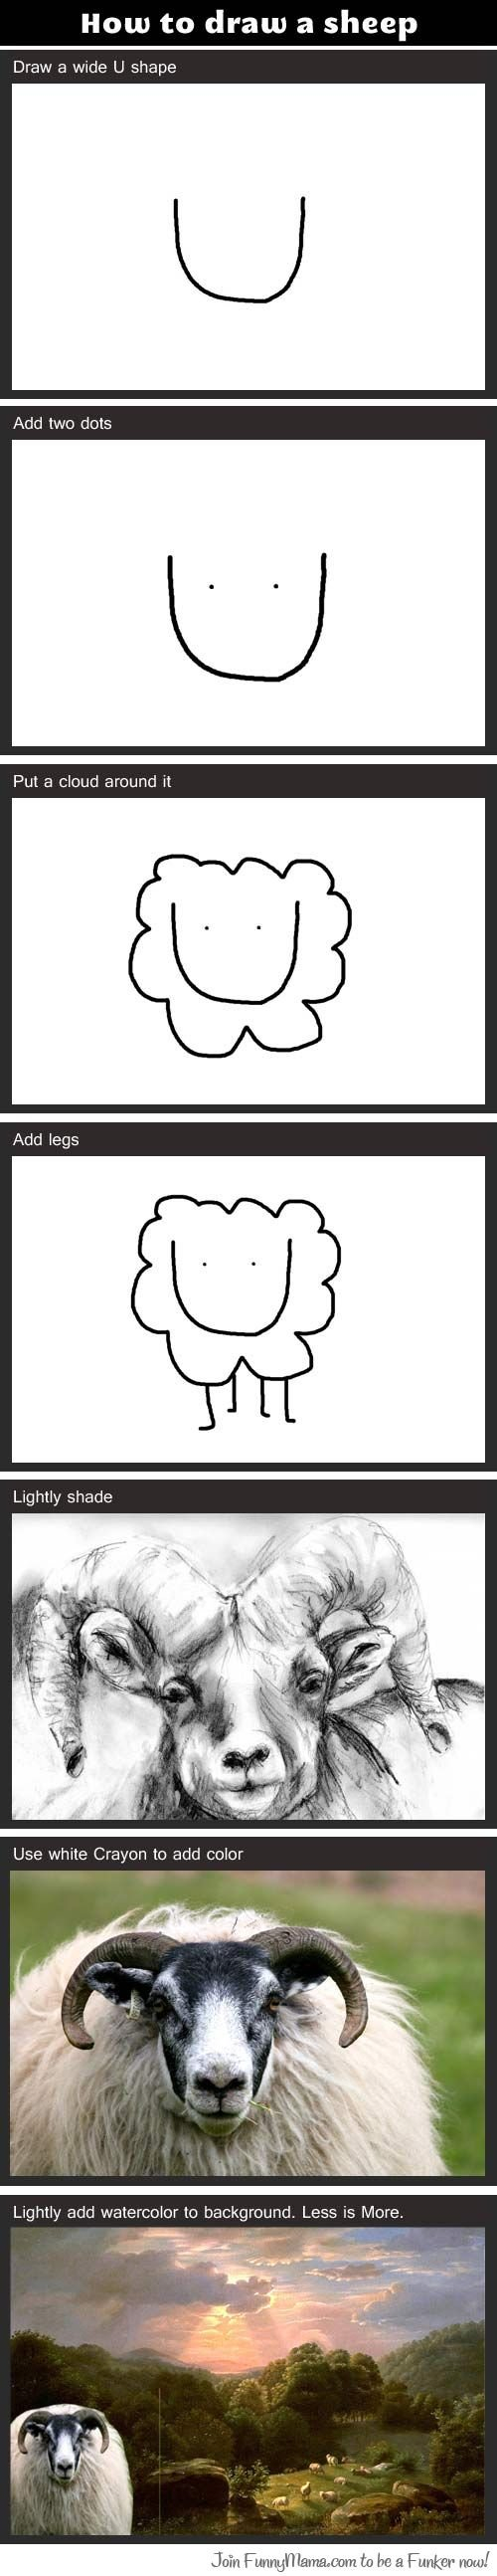 how to draw. Remember: Less is More. How to draw Ft.,) sheep w A' wide I shape.- PM E 'siltrim .. it Lightly slende Join in he a Fatter mu!. relevant.